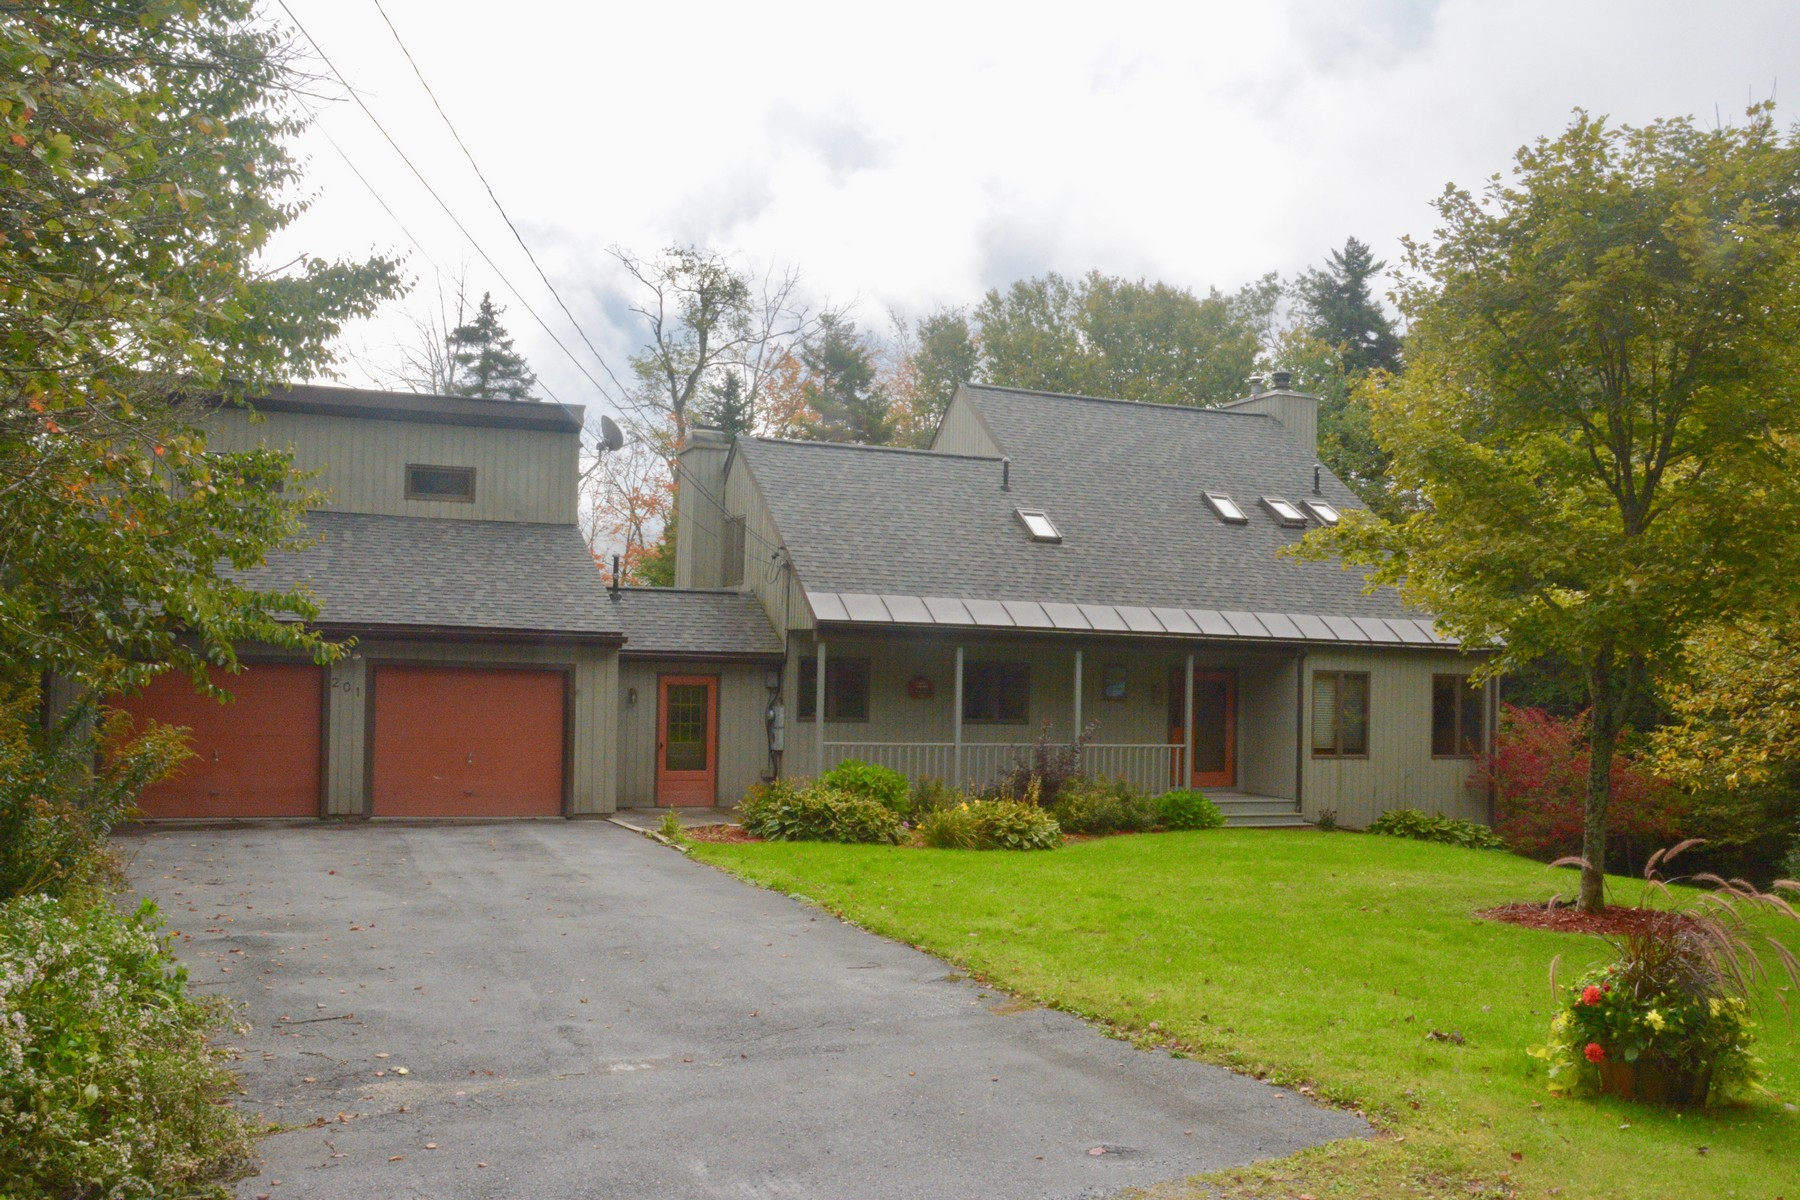 Single Family Home for Sale at 201 Erb's Way, Woodford 201 Erb's Way Woodford, Vermont 05201 United States